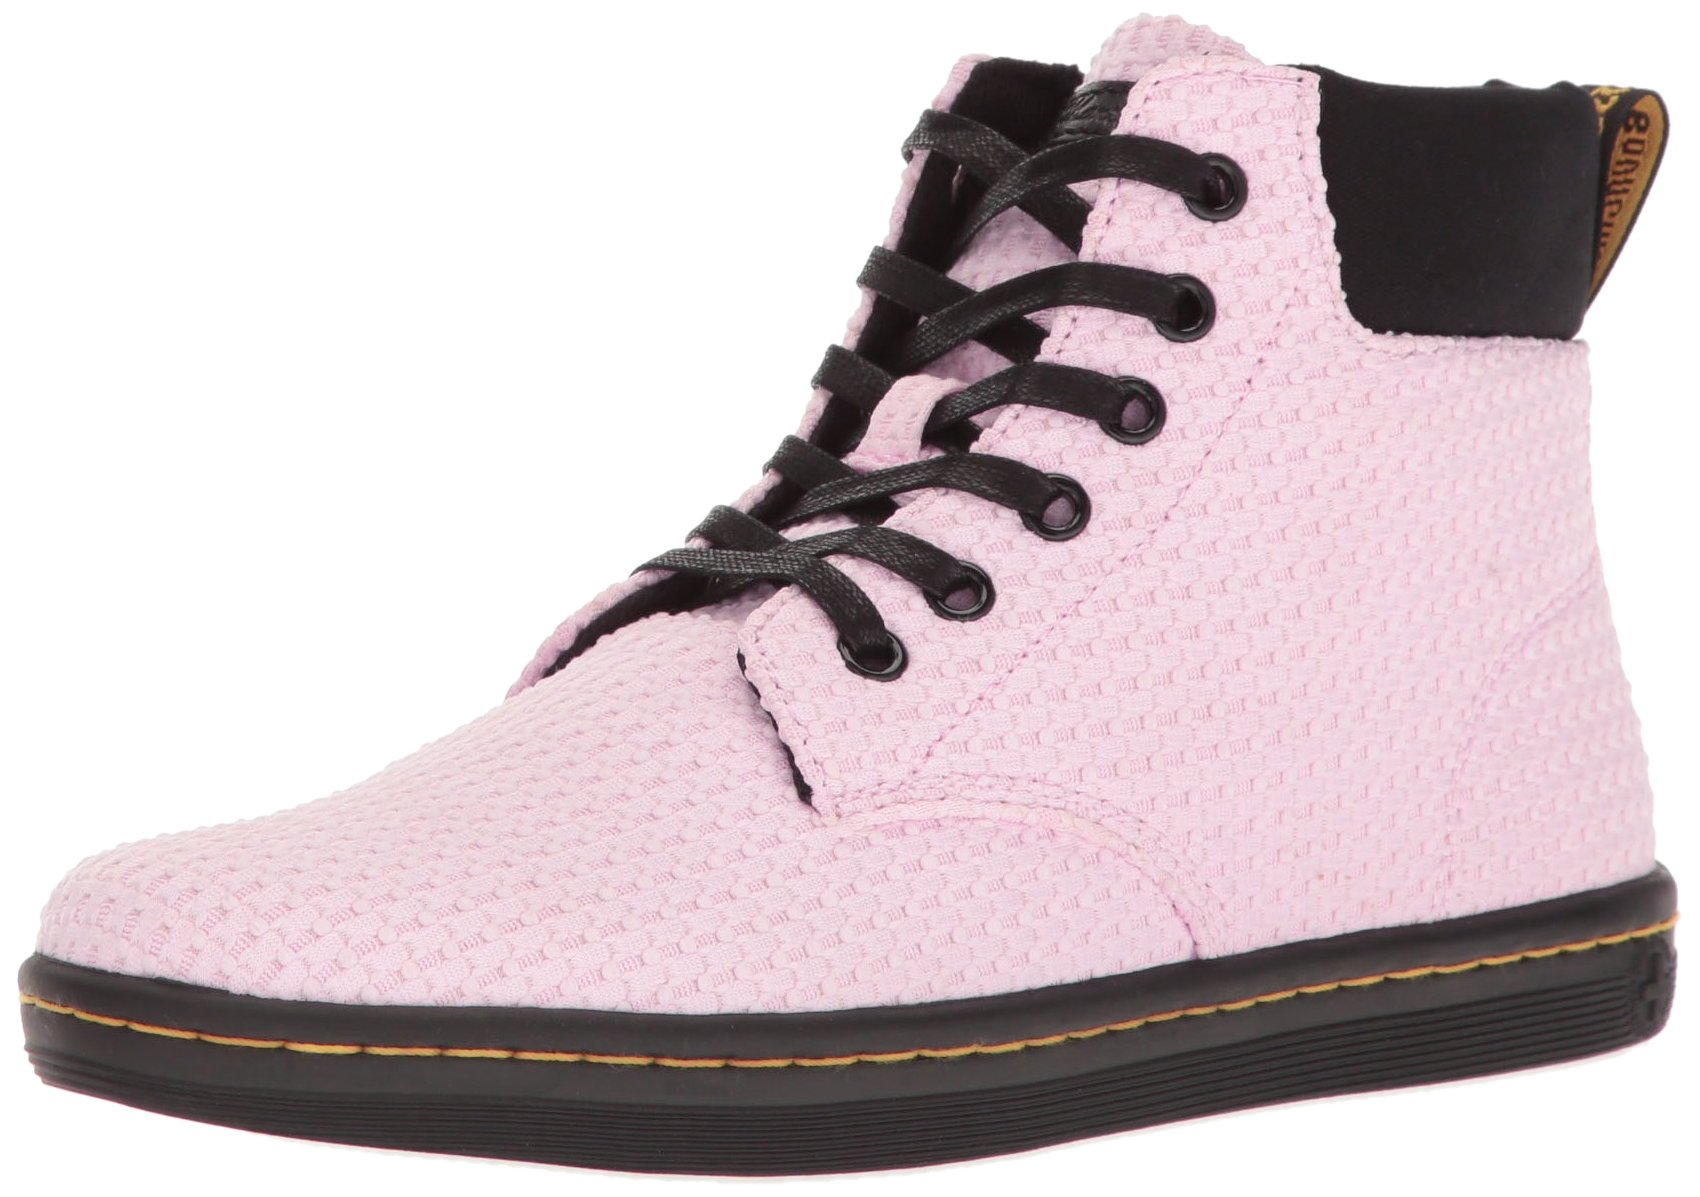 Dr. Martens Women's Maelly Wc Boot, Bubble Gum+Black, 9 UK/11 M US